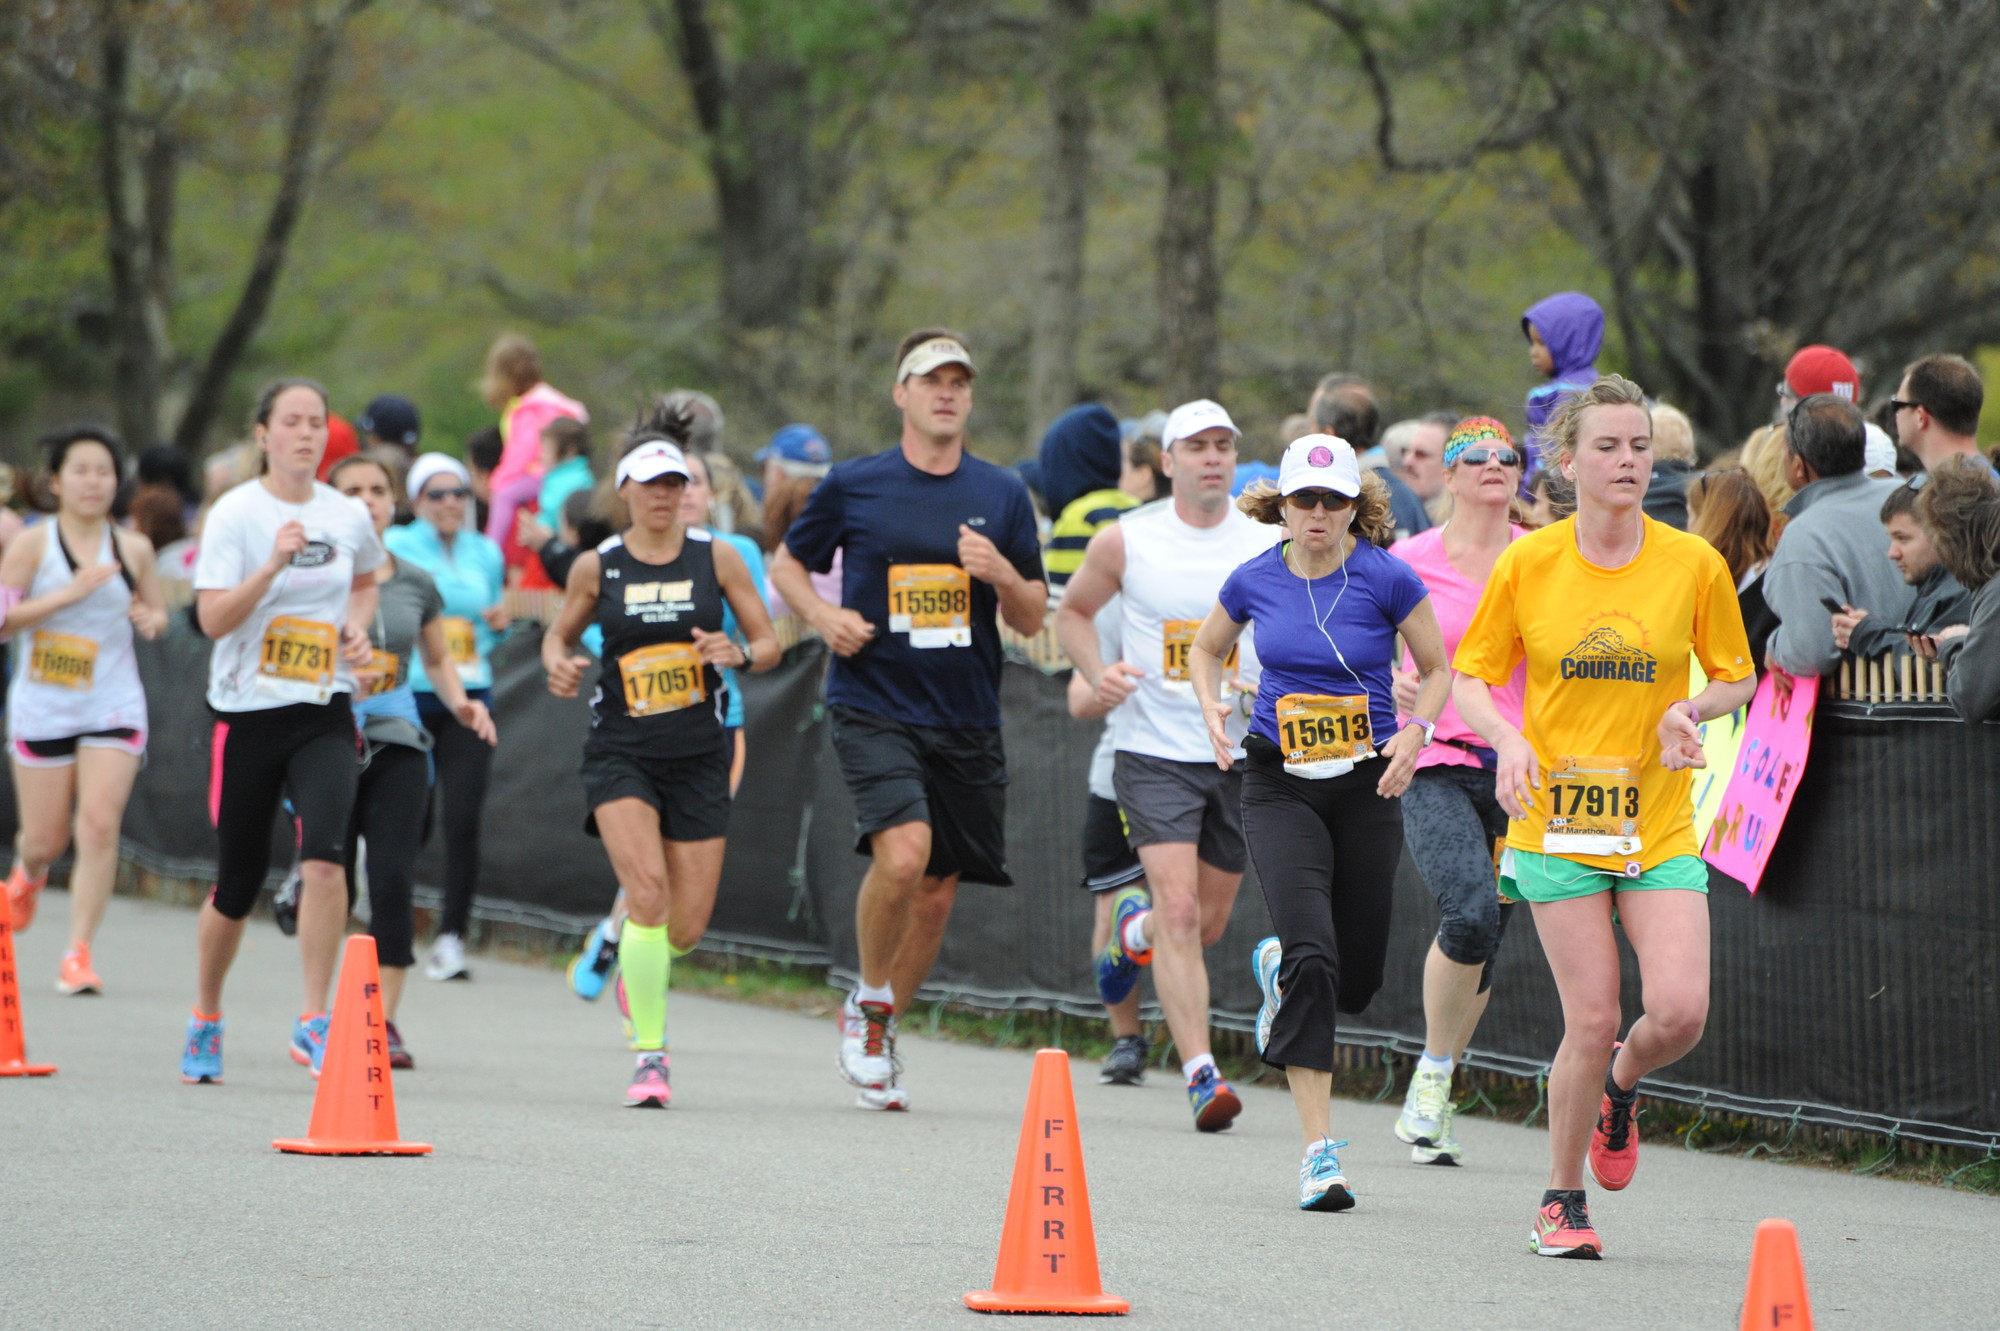 More than 7,000 runners participated in the Long Island Marathon's various races last weekend, including the 13.1 half marathon, pictured above.